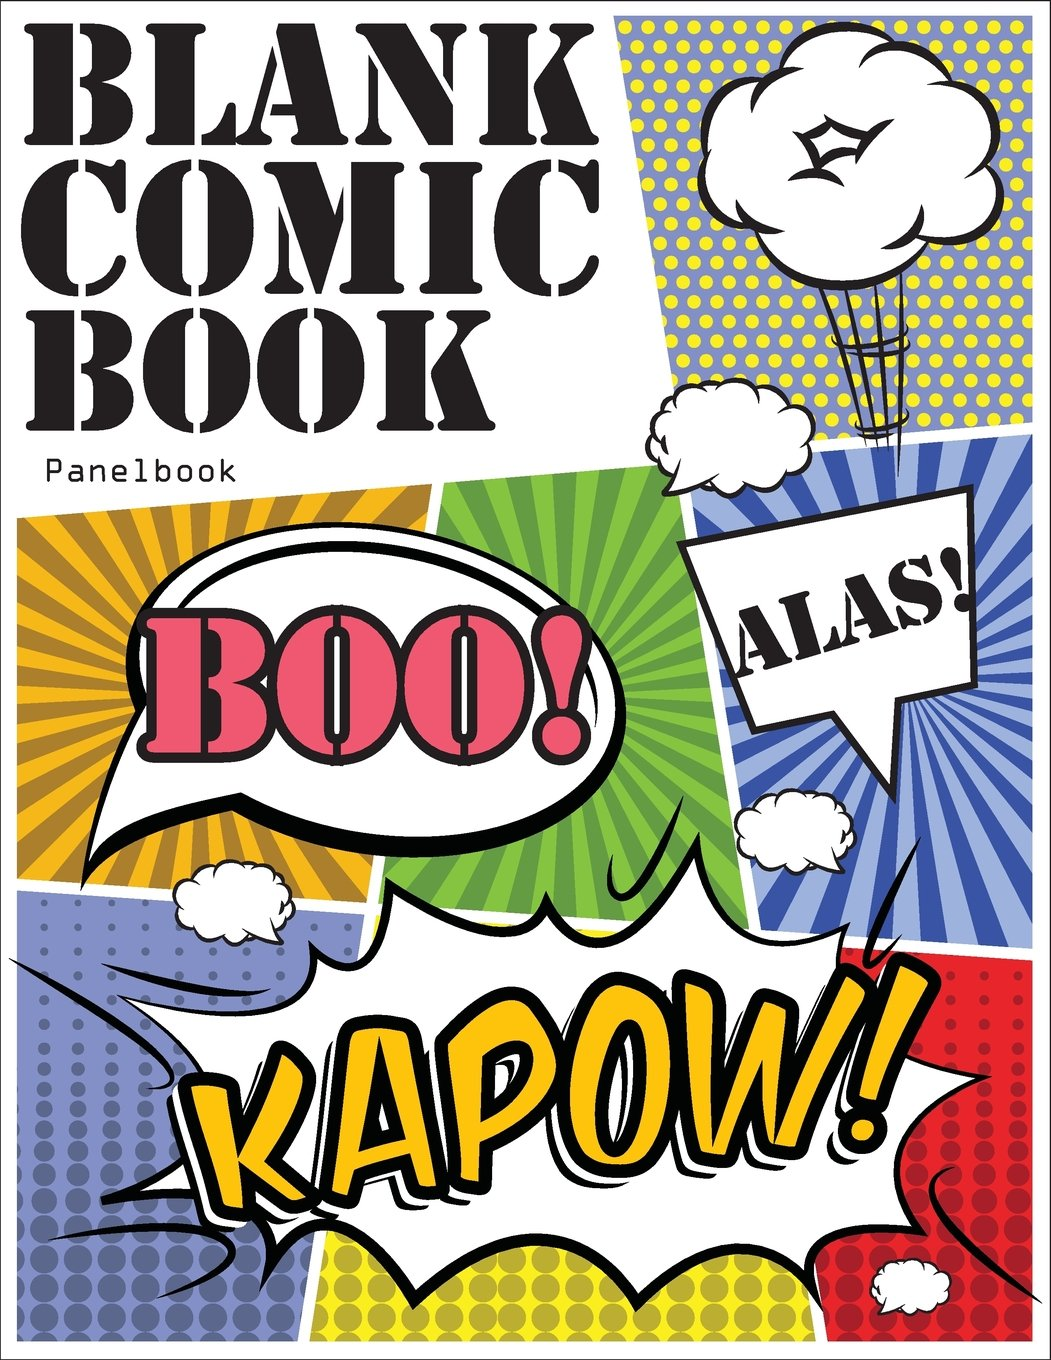 Blank Comic Book Panelbook: Draw your own Comics with Variety of Templates 110 pages, 8.5 x 11 inches.Blank comic books panel for kids (Blank Comic Book Notebook) (Volume 1)